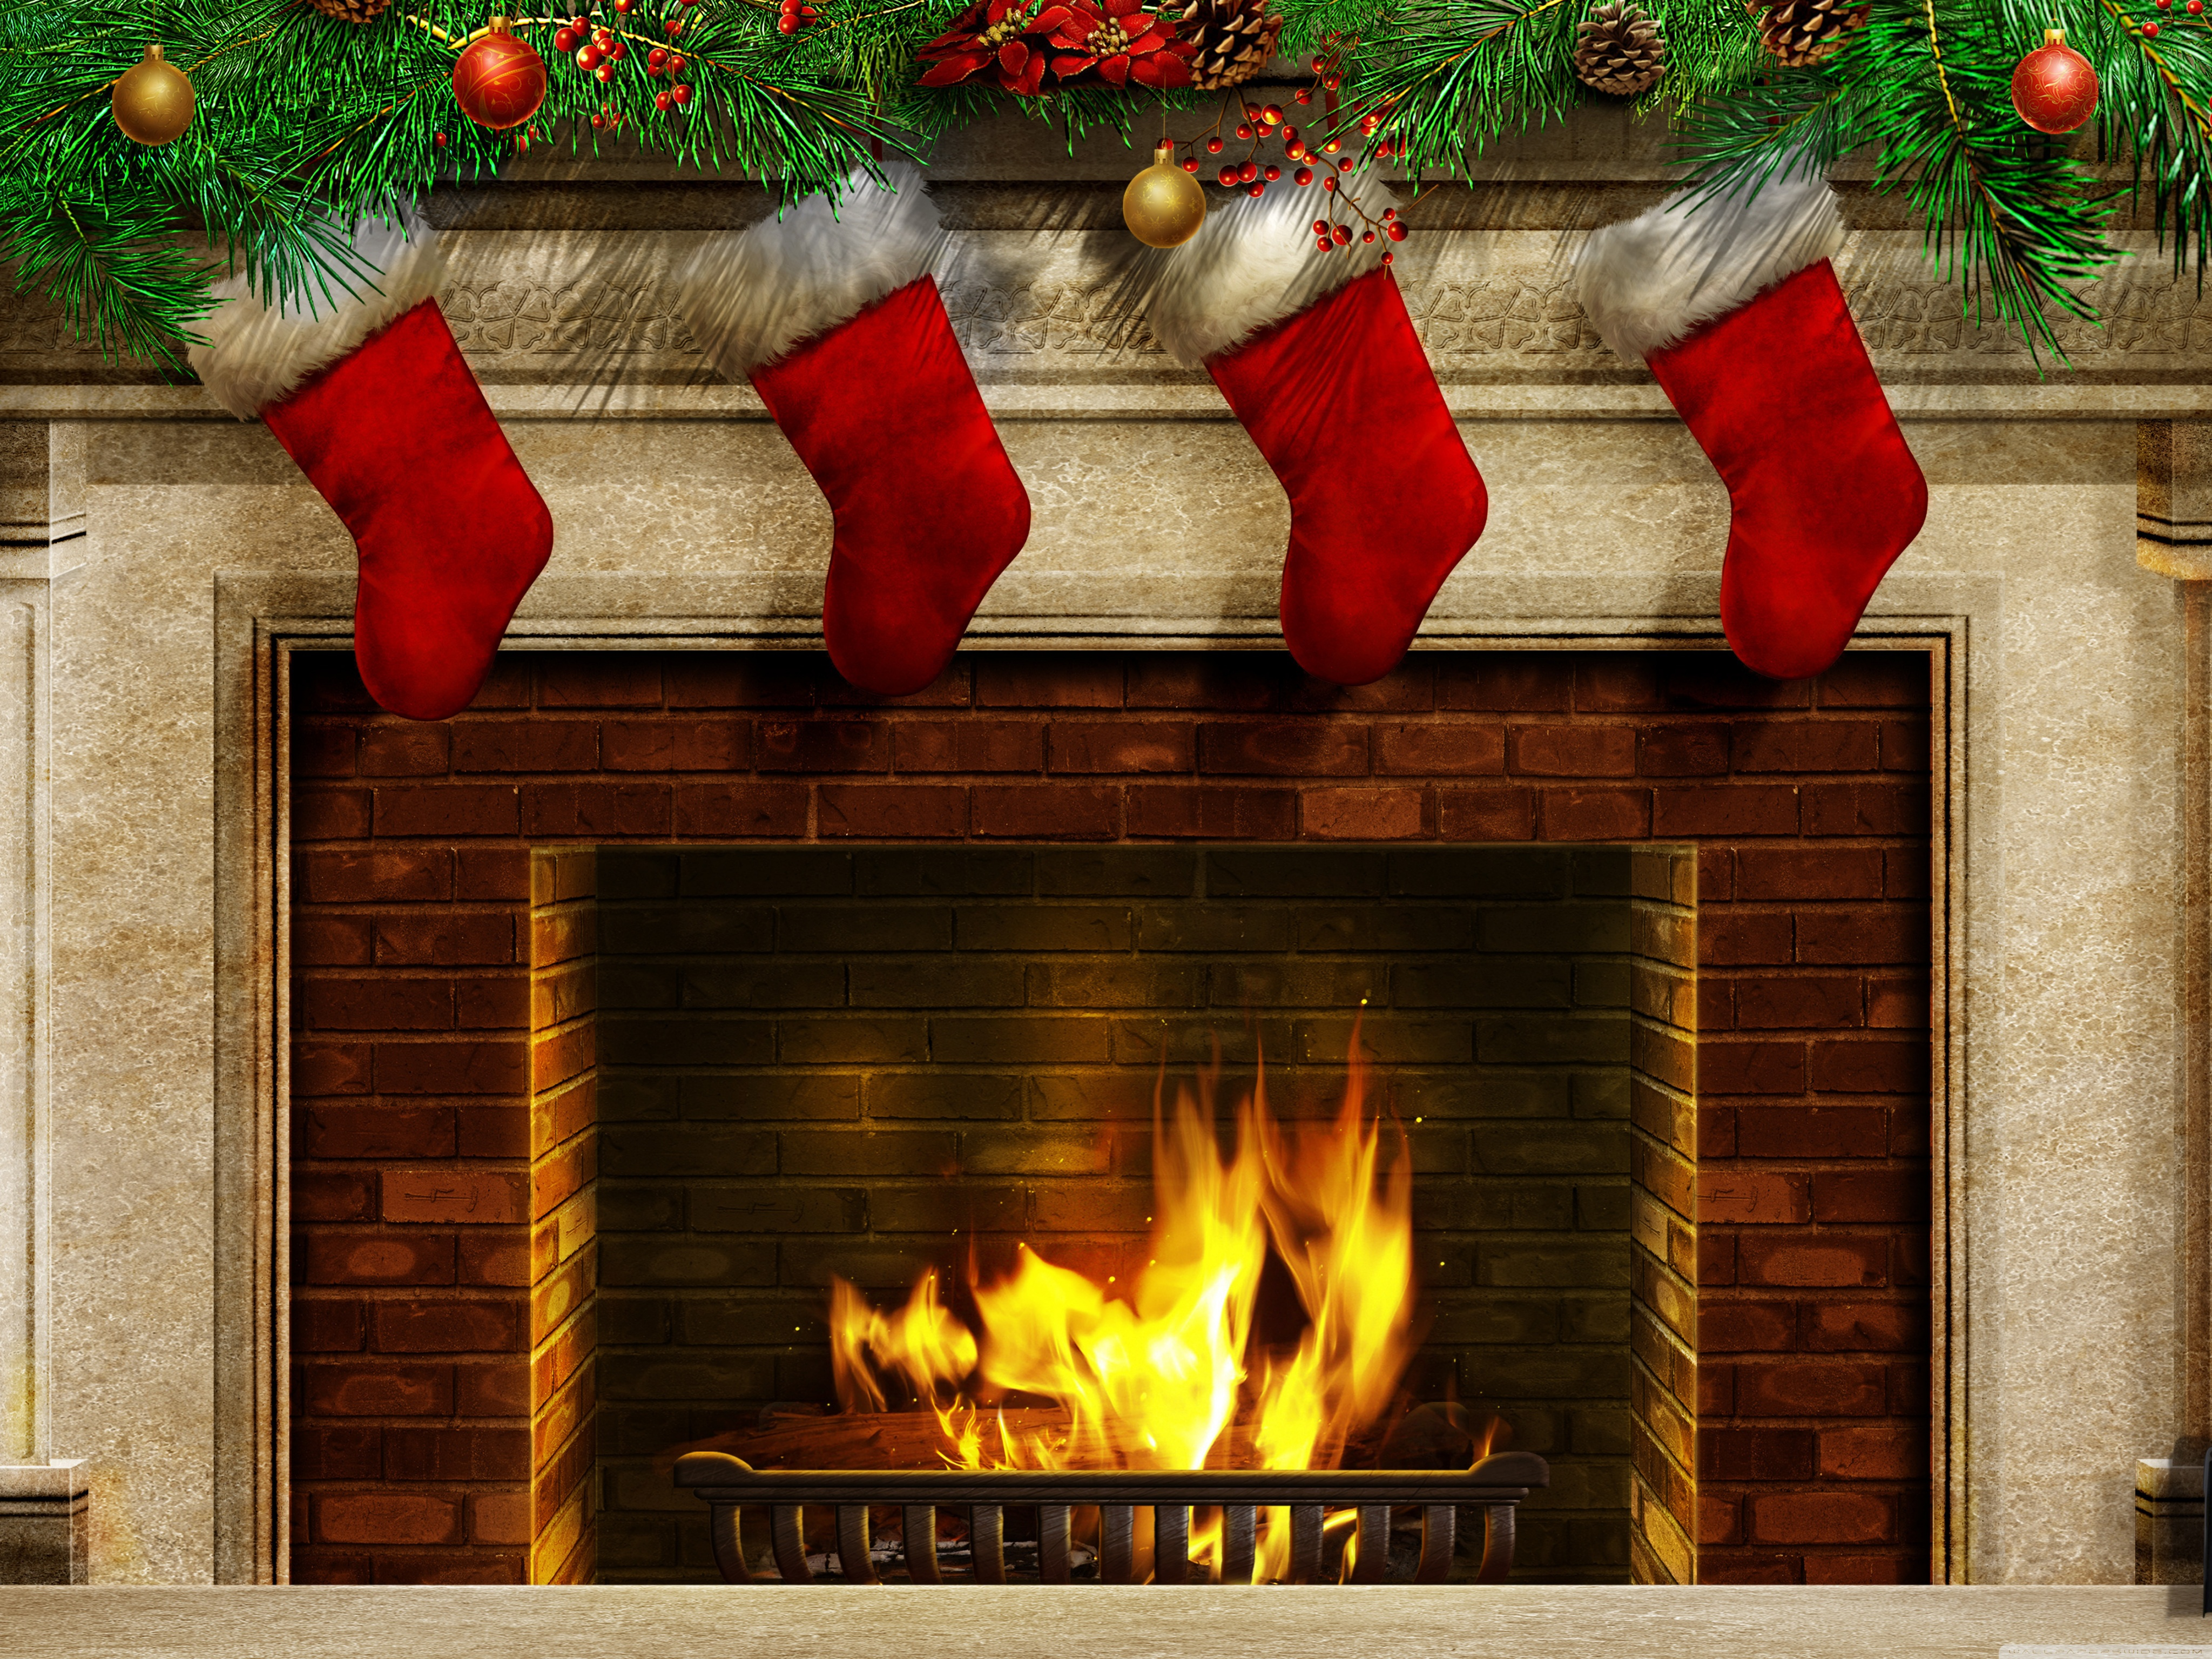 New Years socks at a fireplace wallpapers and images 4096x3072